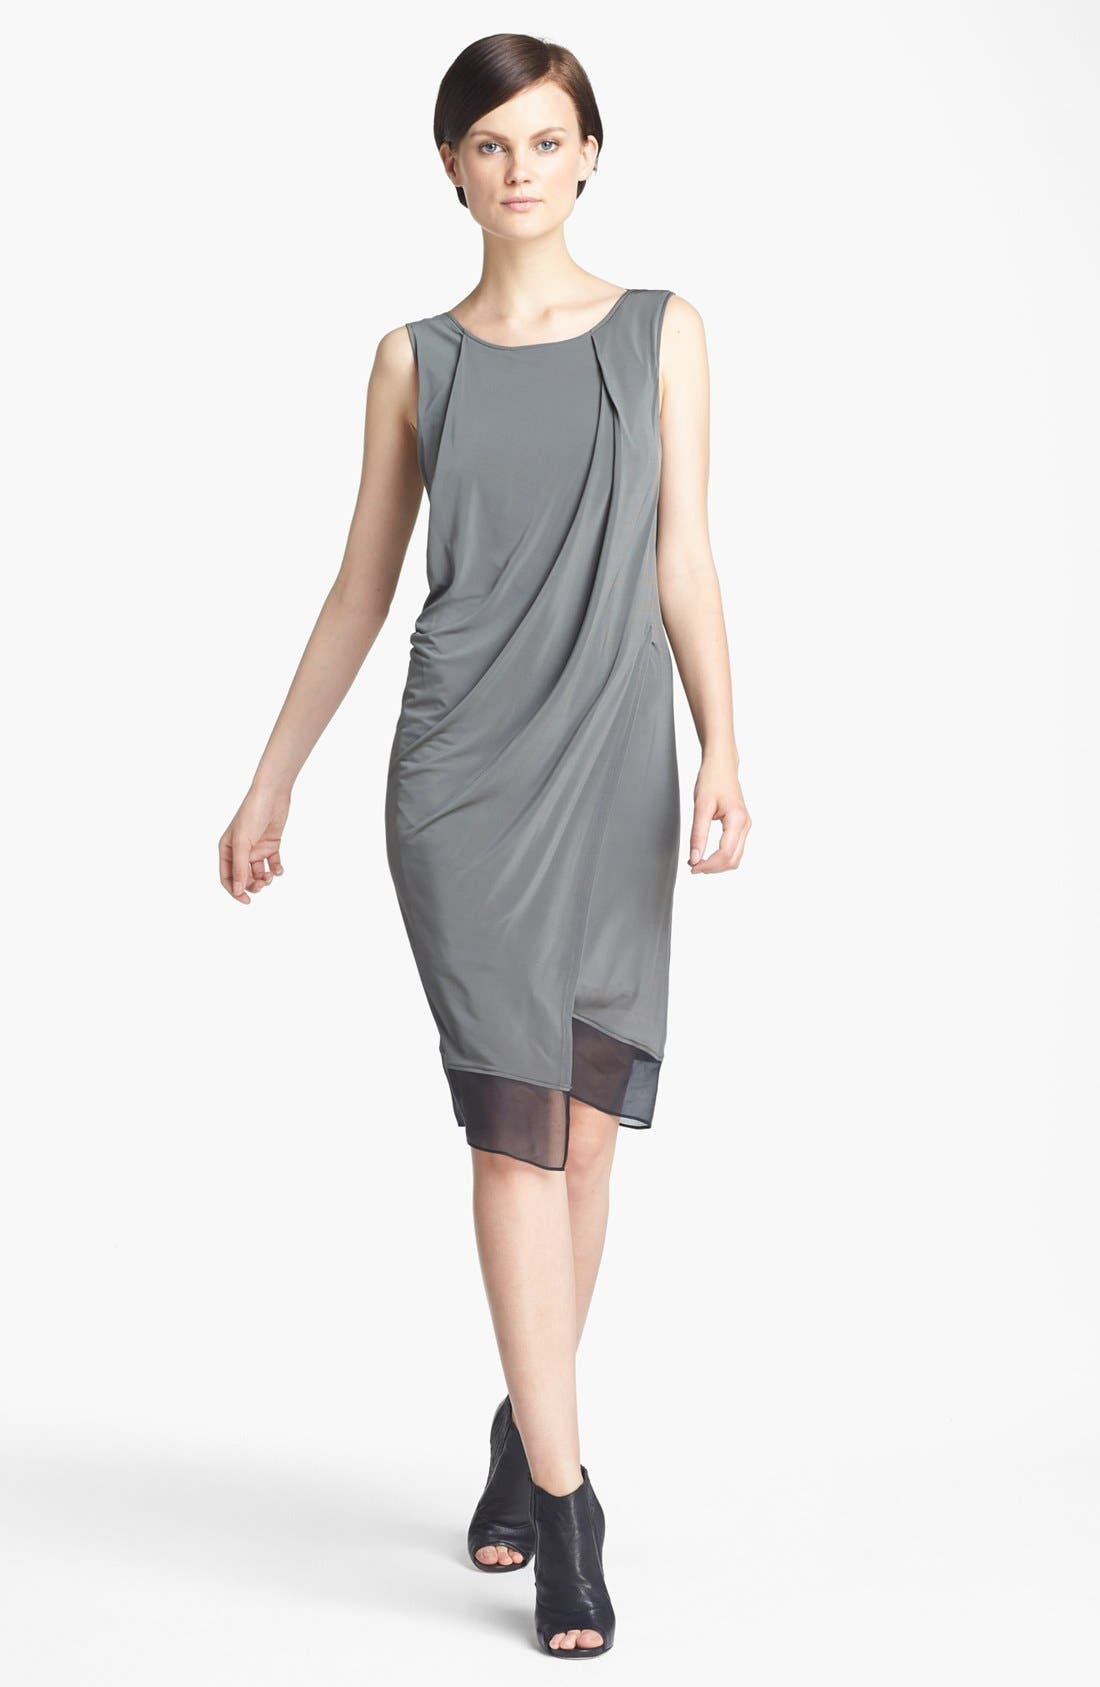 Alternate Image 1 Selected - Helmut Lang 'Melody' Sleeveless Dress